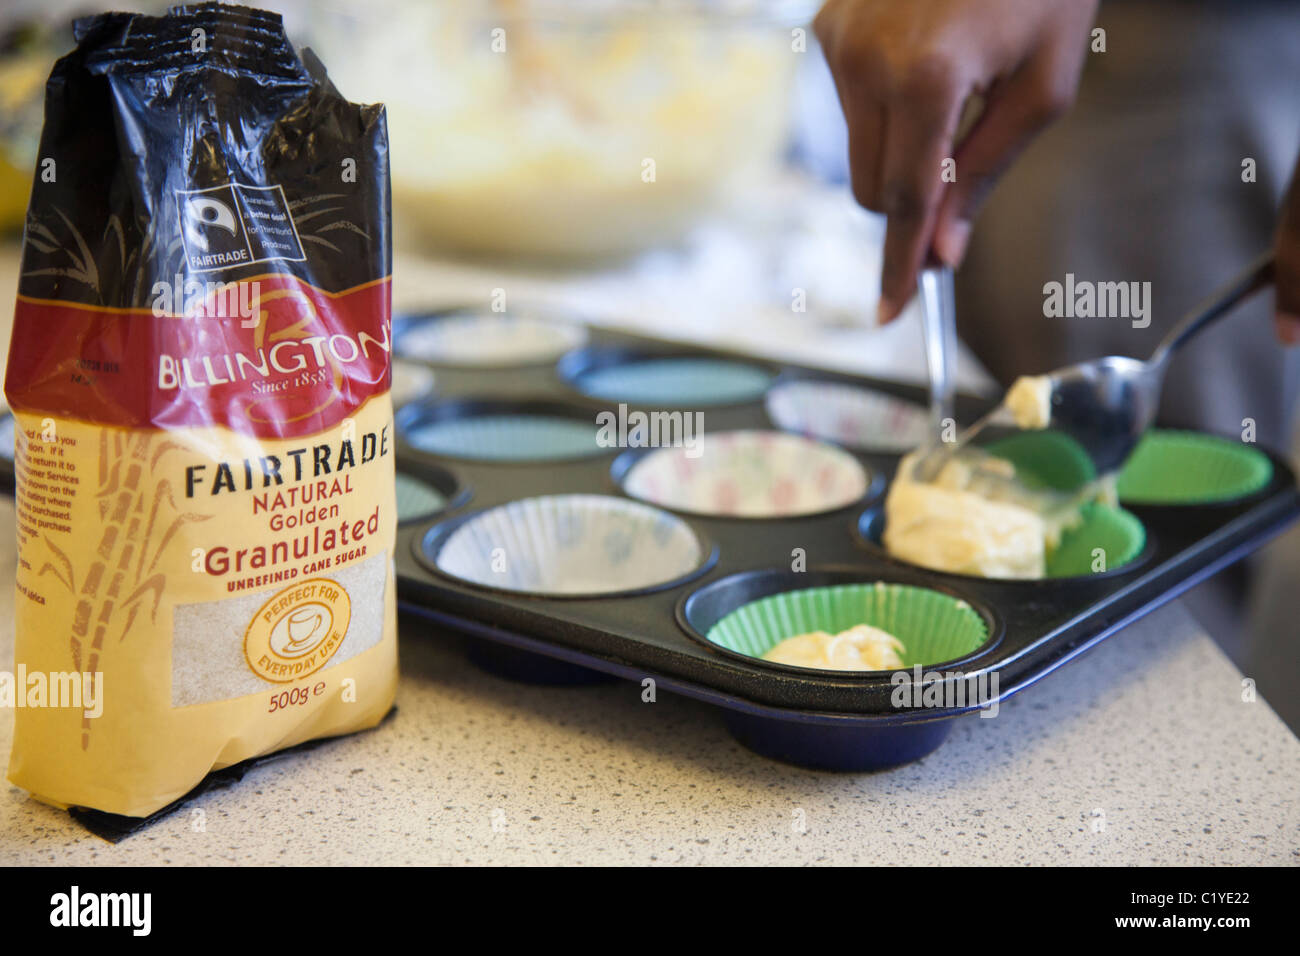 cooking fairtrade 'fair trade' products - Stock Image